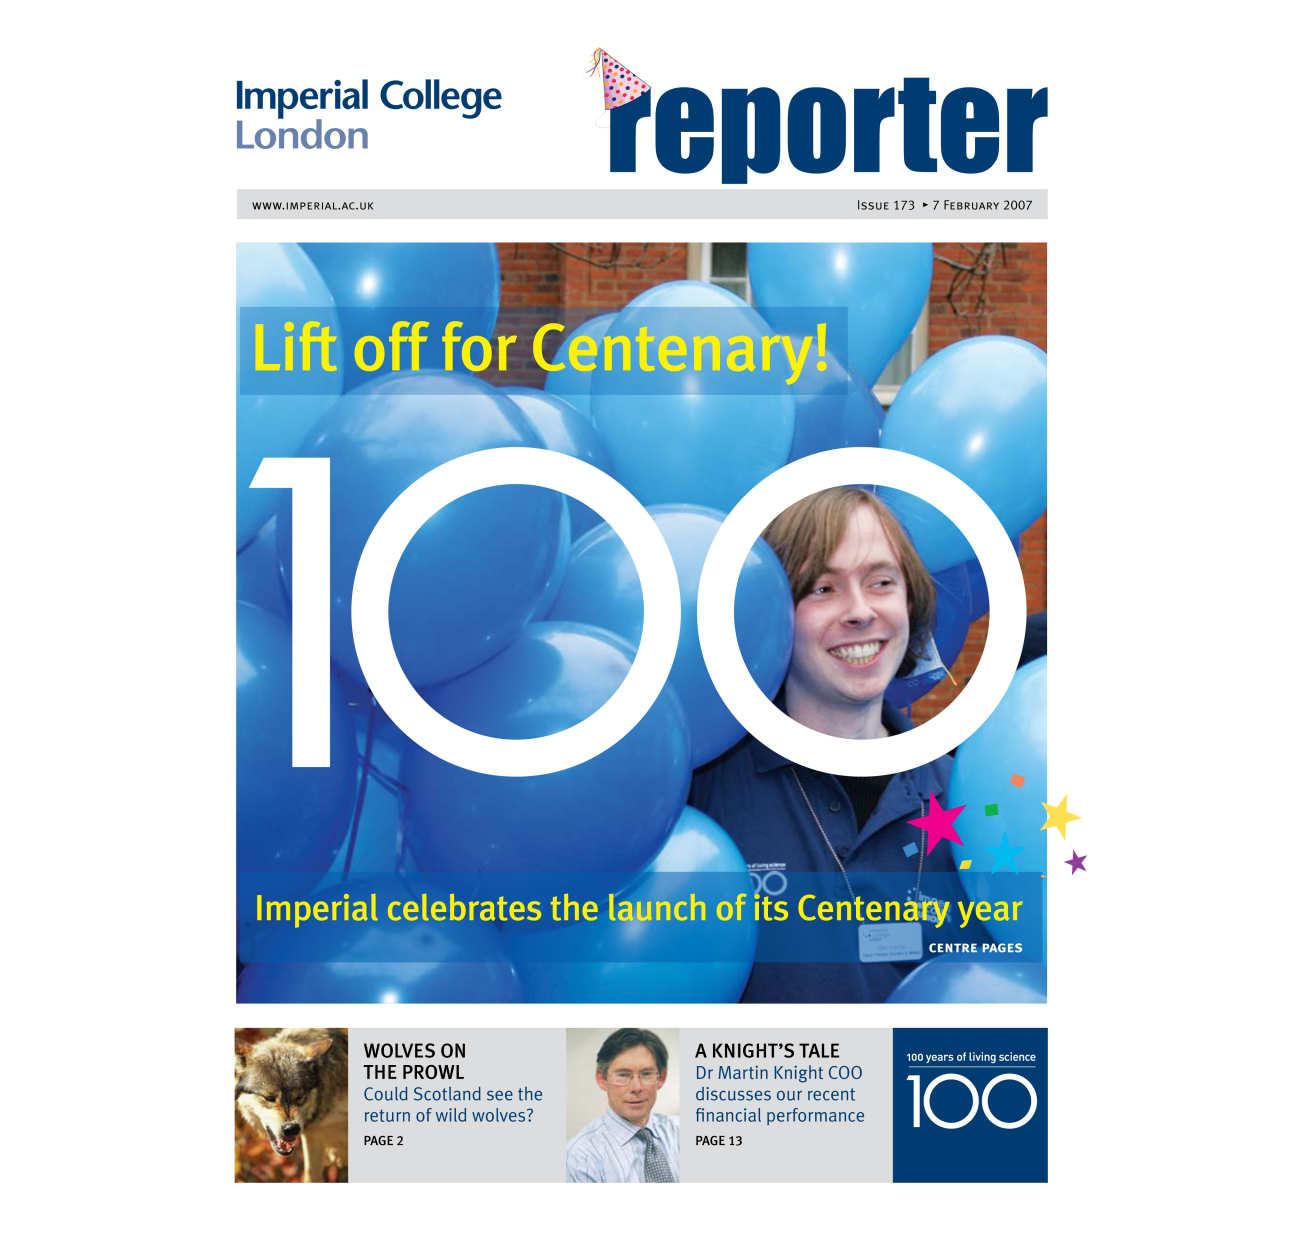 Issue 173 - 7 February 2007